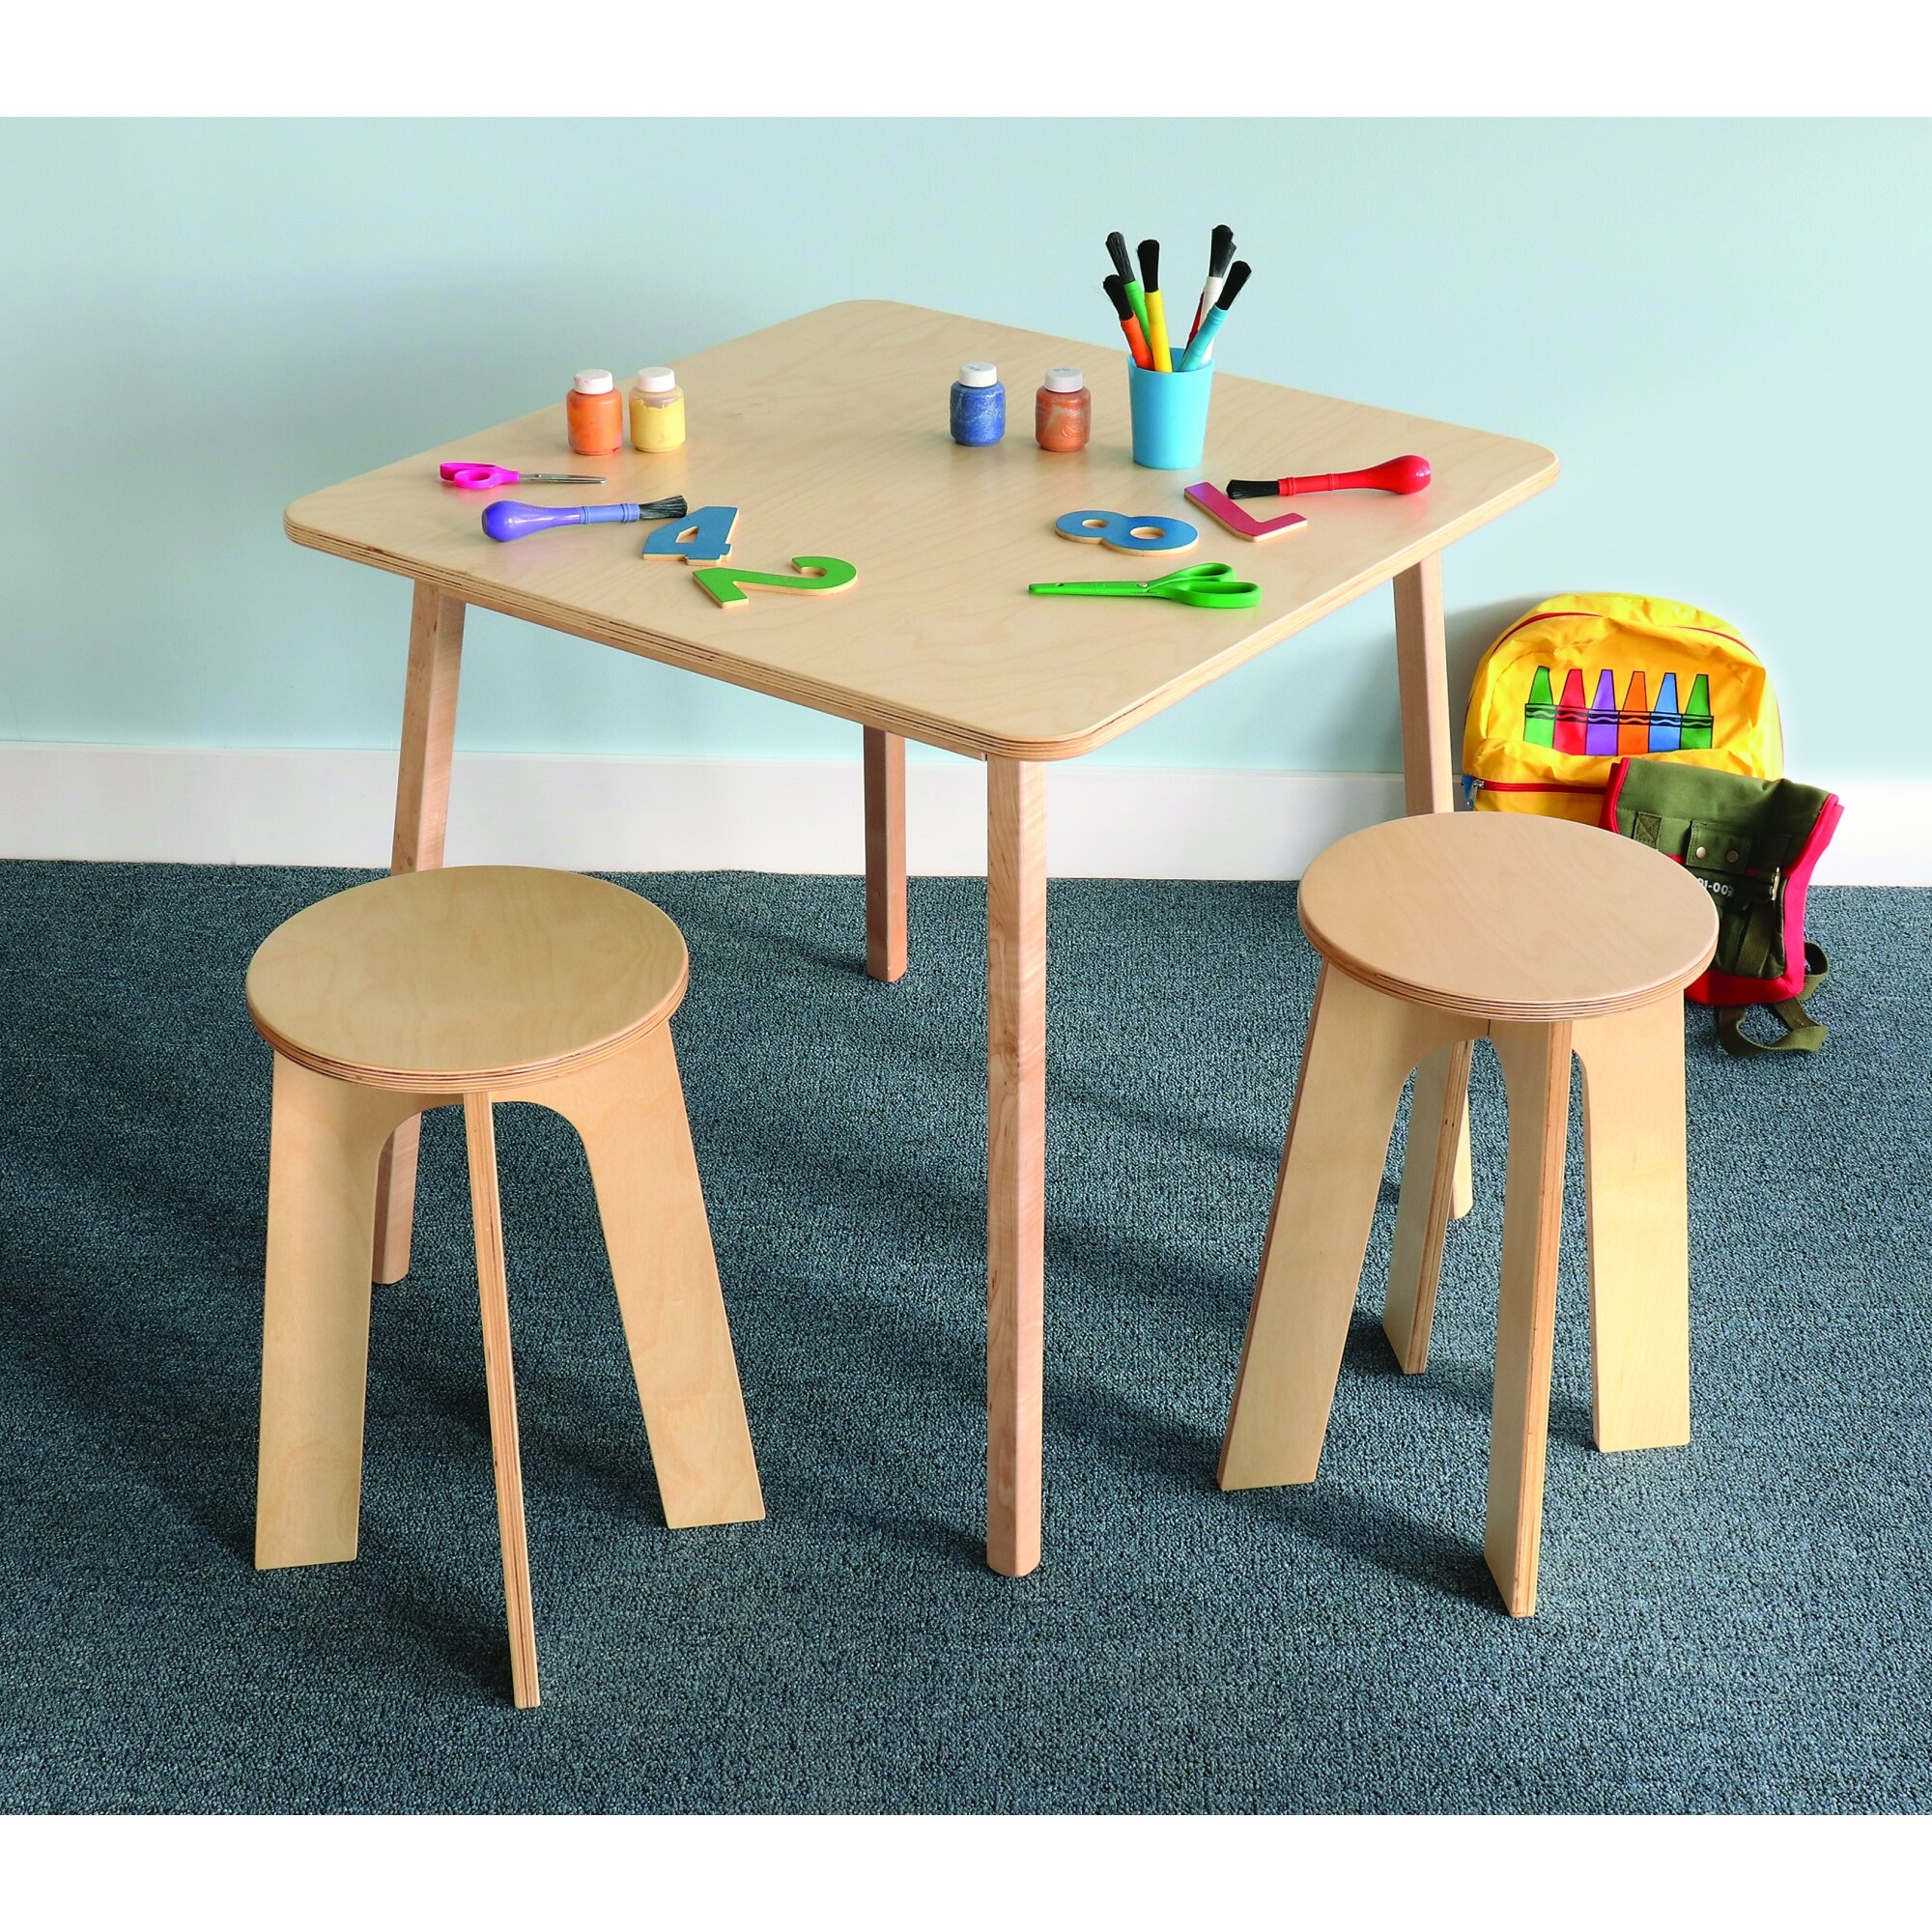 Enjoyable Stand Up Kids 3 Piece Writing Table And Chair Set Uwap Interior Chair Design Uwaporg